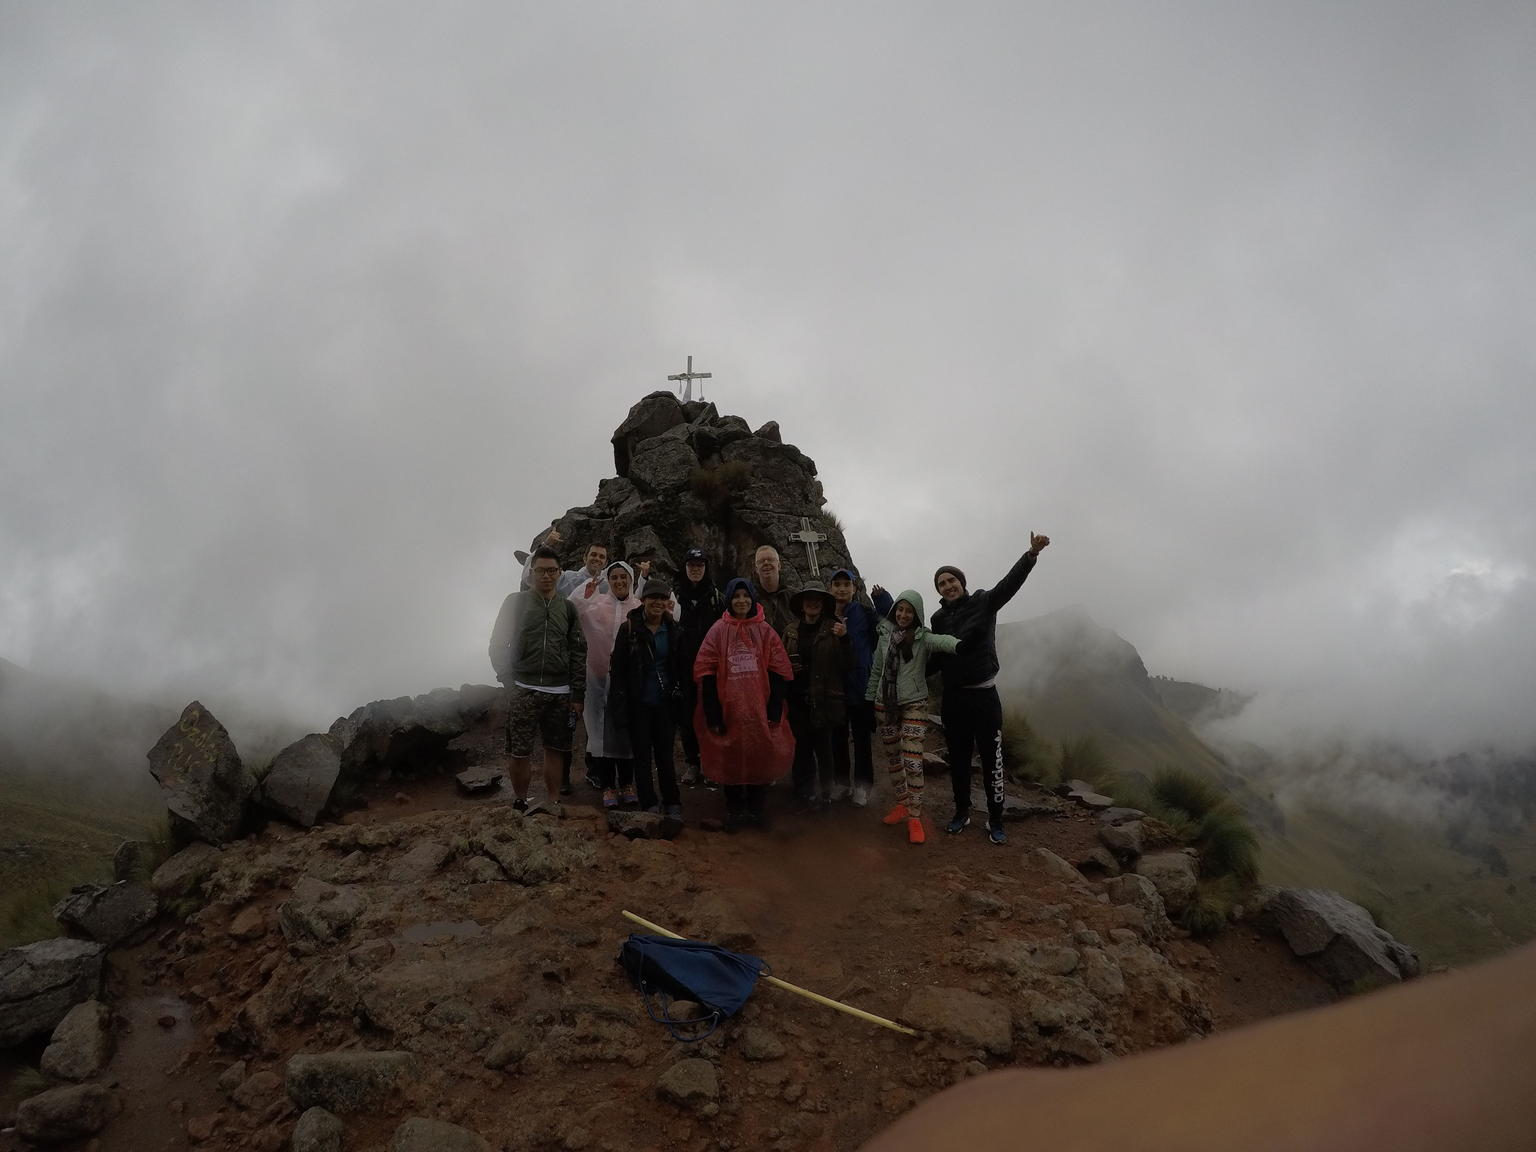 Iztaccihuatl Volcano Hiking Tour from Mexico City